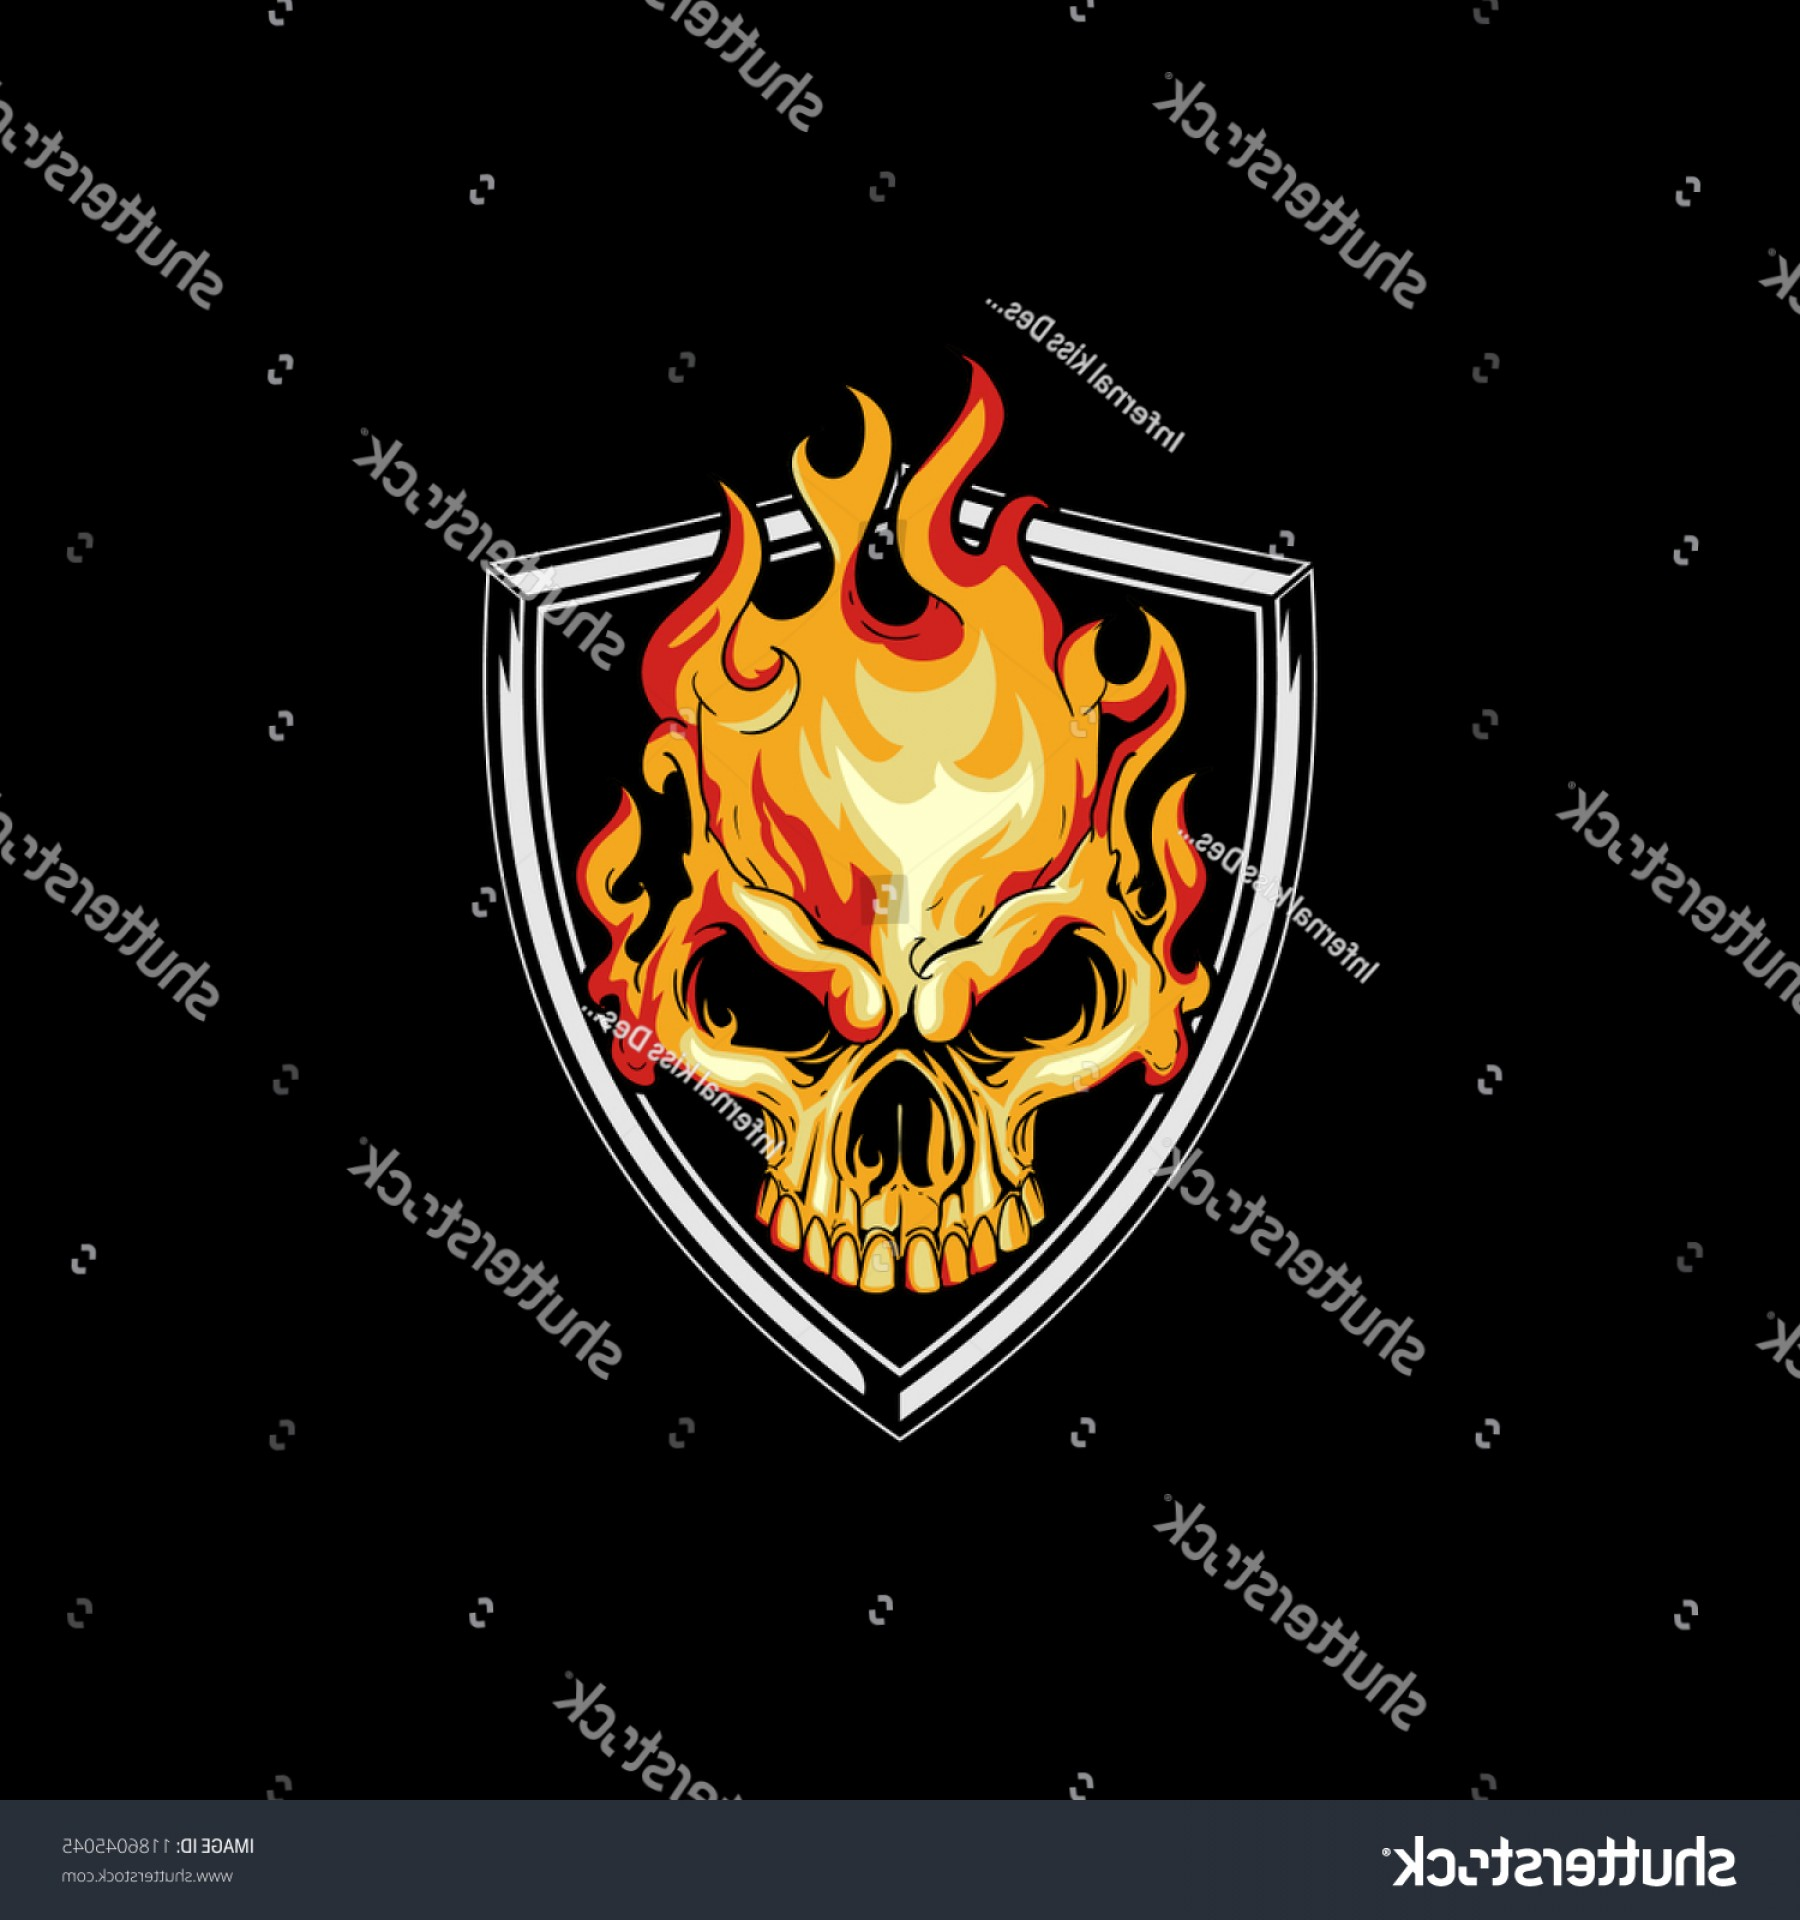 Harley-Davidson Flame Vector Silhouette: Fire Skull Head Shield Badge Logo